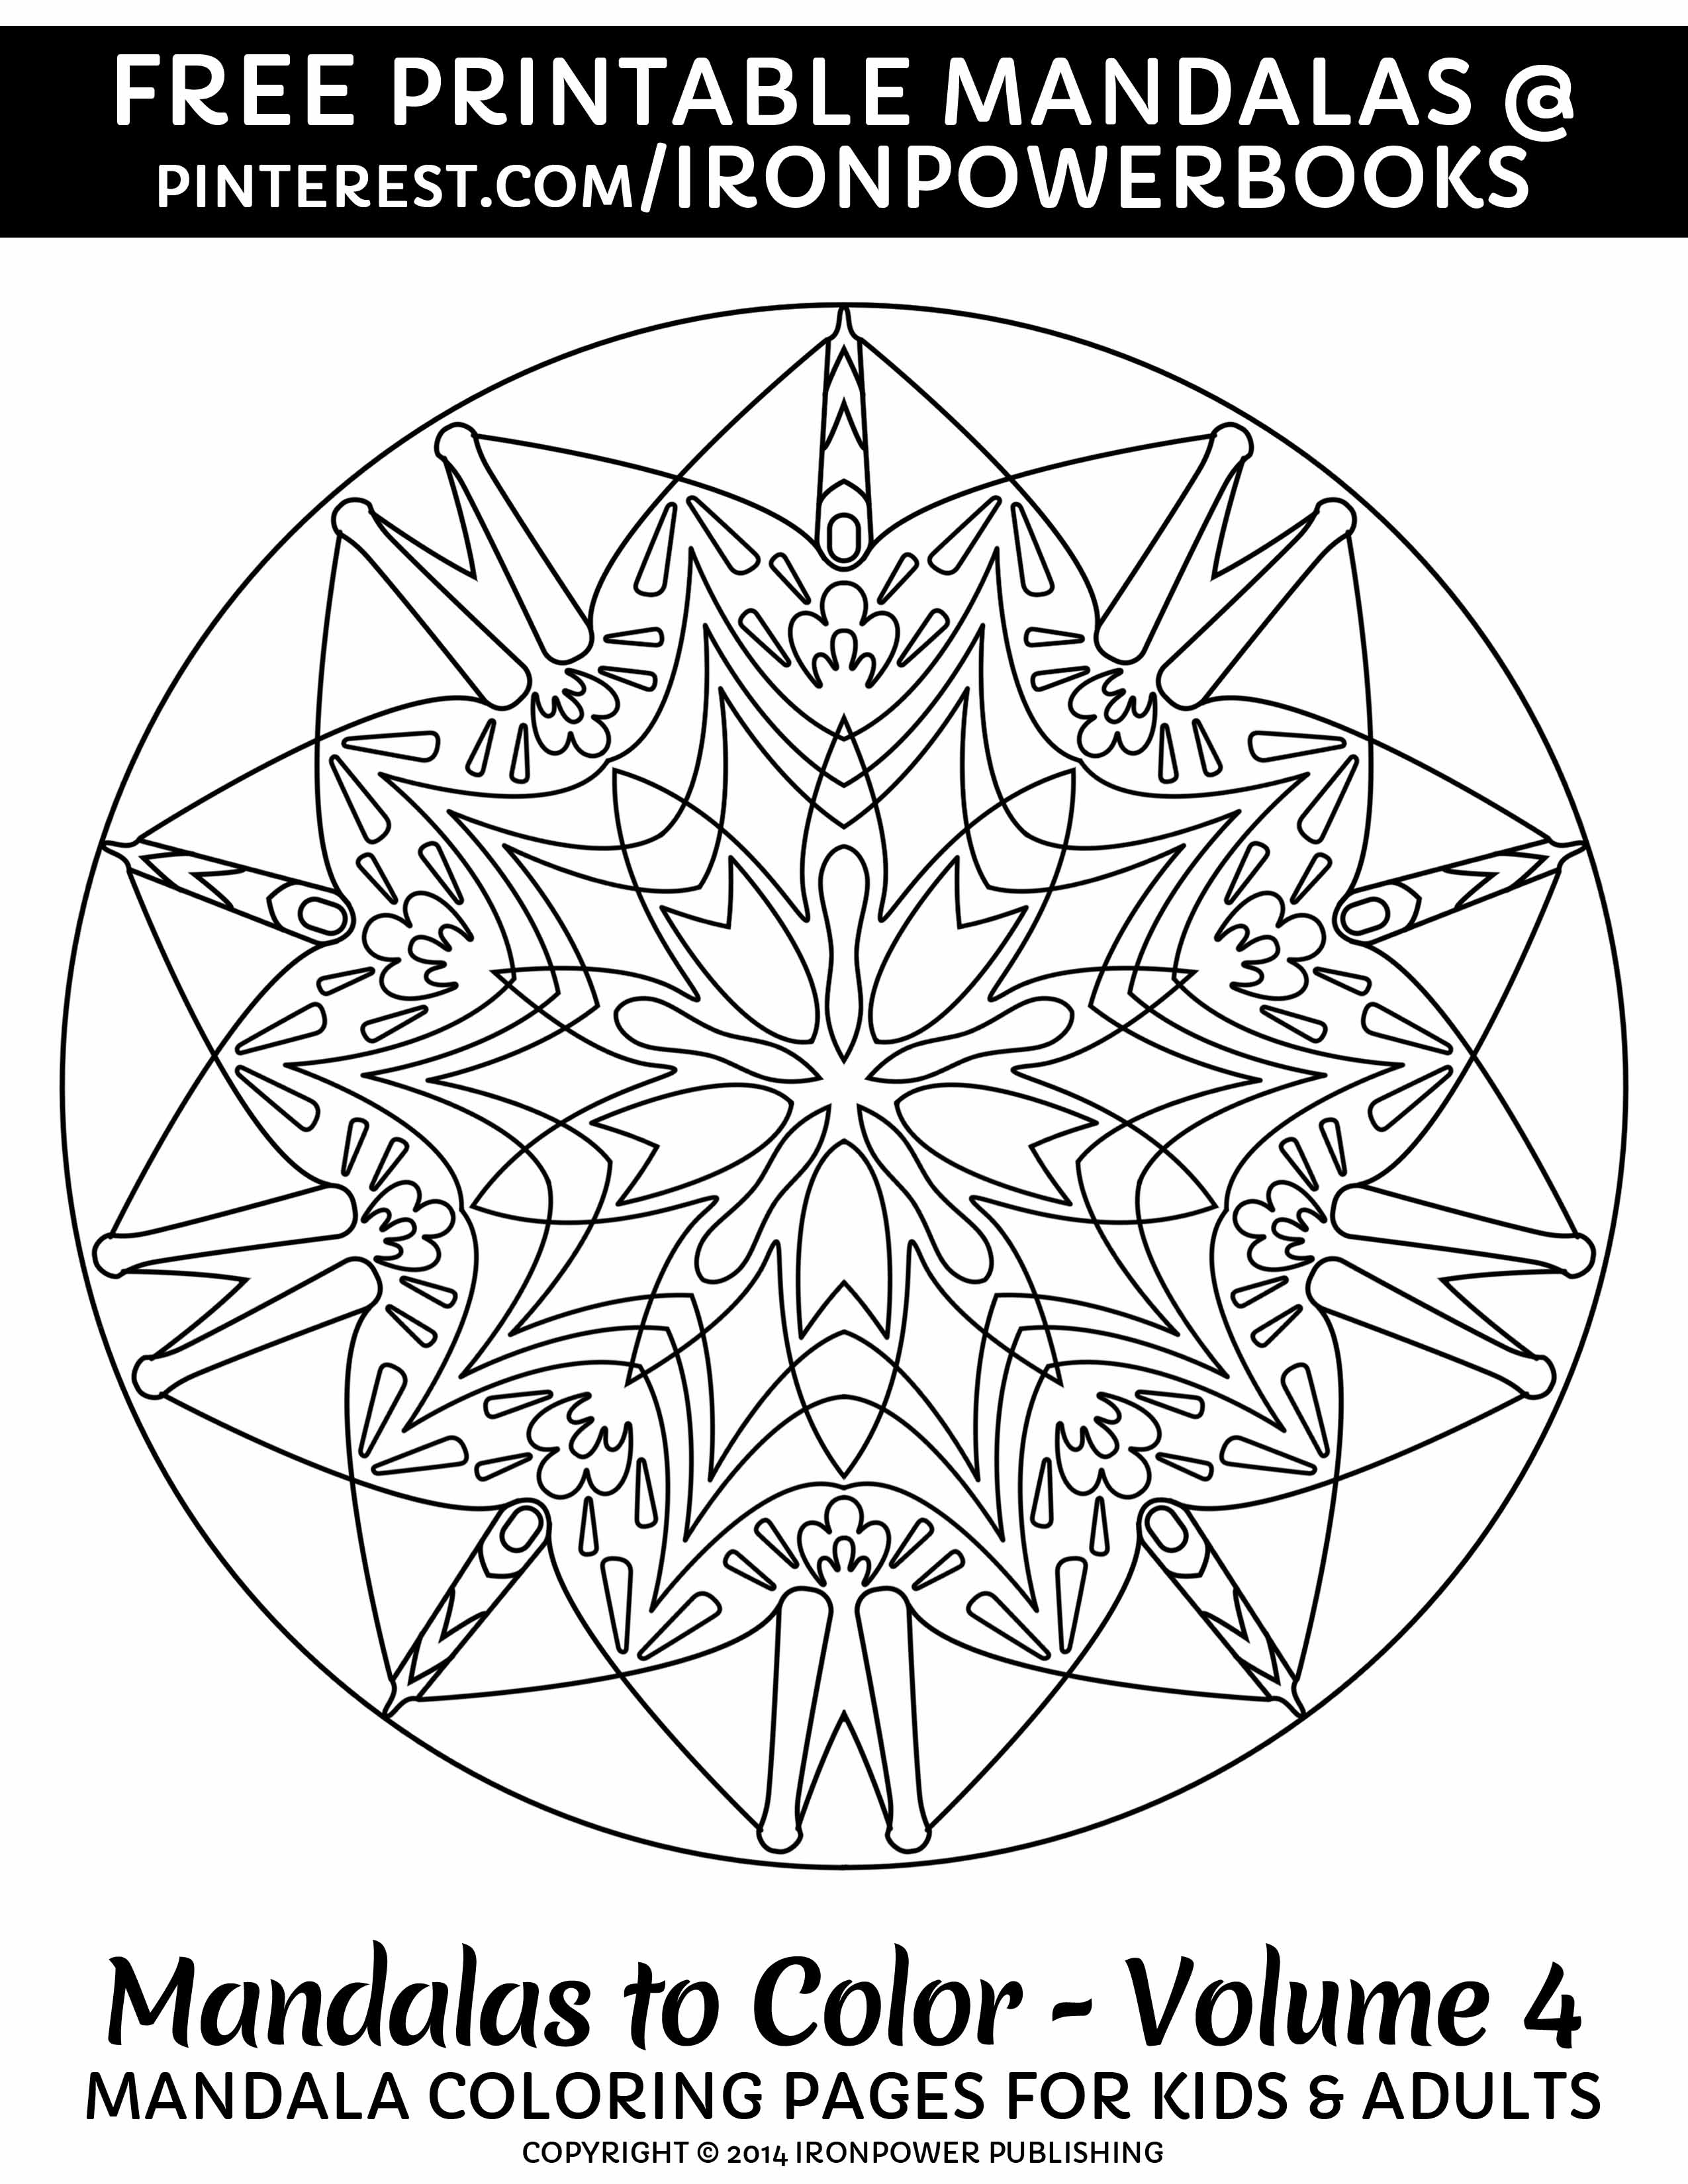 scandinavian flags coloring scandinavian coloring pages at getcoloringscom free coloring scandinavian flags 1 1